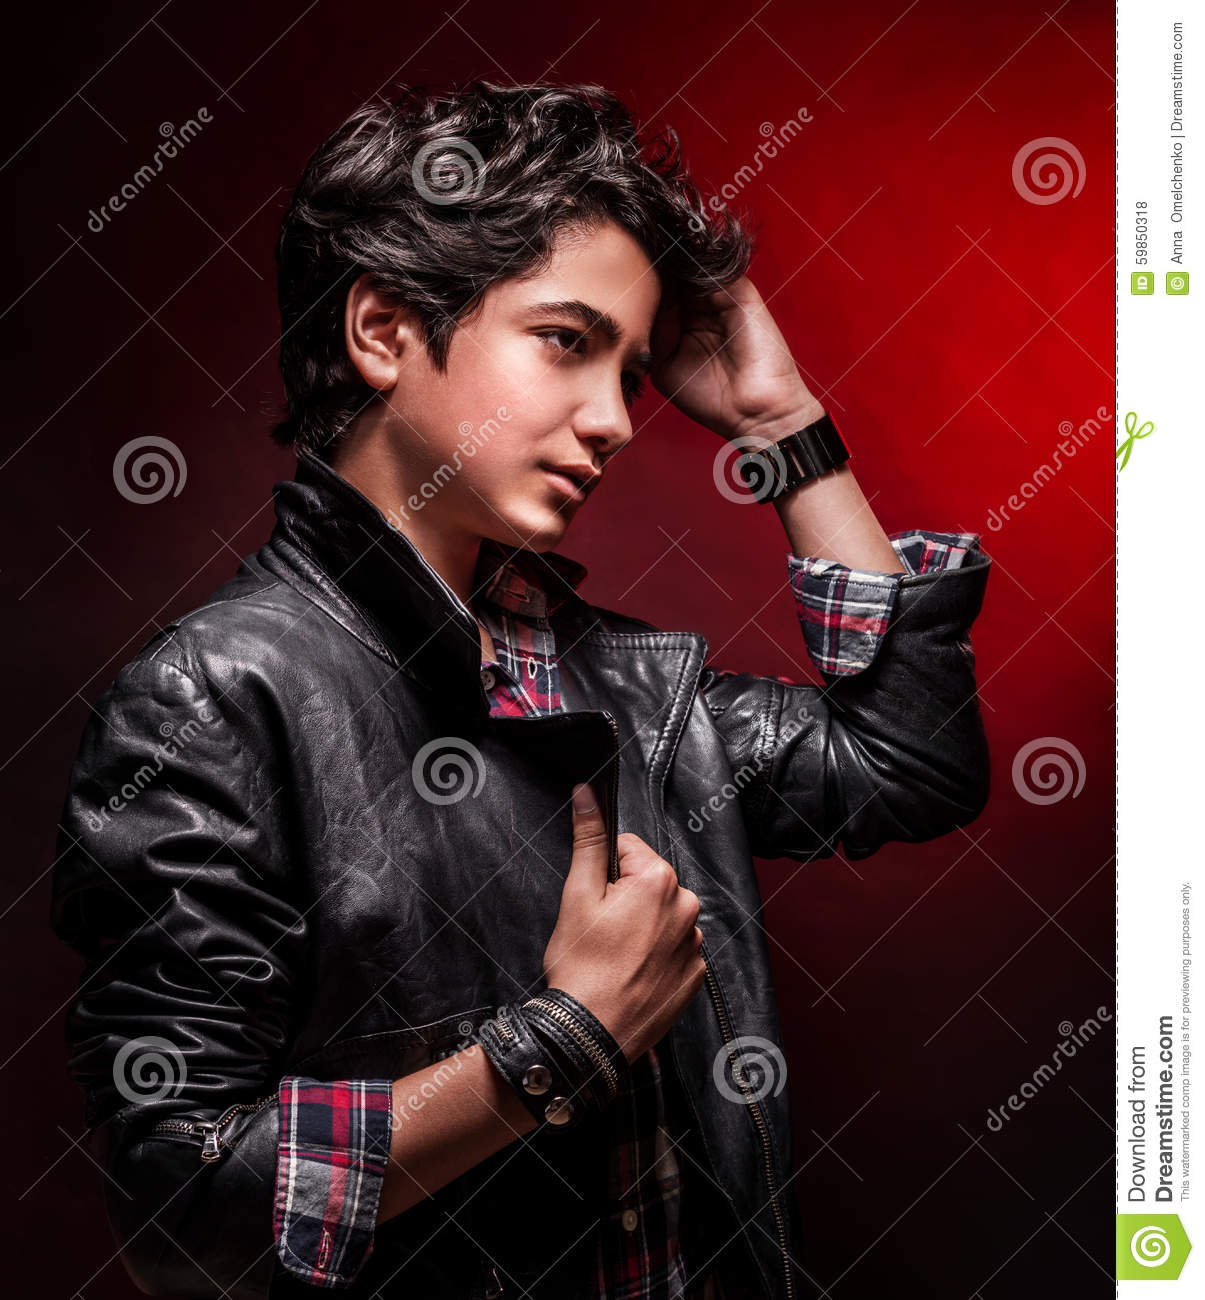 e932bdd19 Stylish guy portrait stock photo. Image of person, leather - 59850318